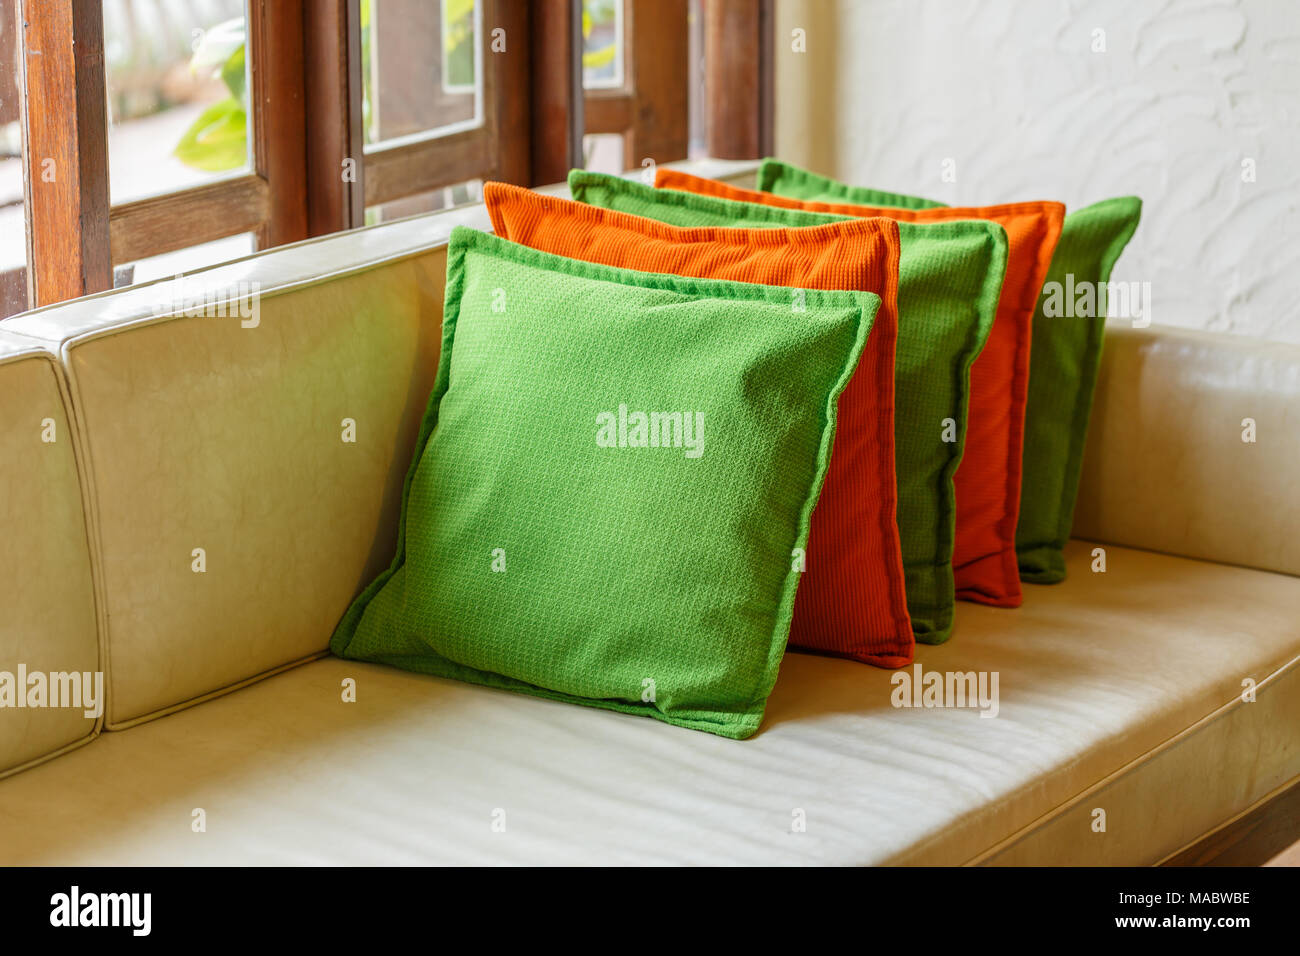 Green And Red Decorative Pillows On White Leather Sofa Stock Photo Alamy